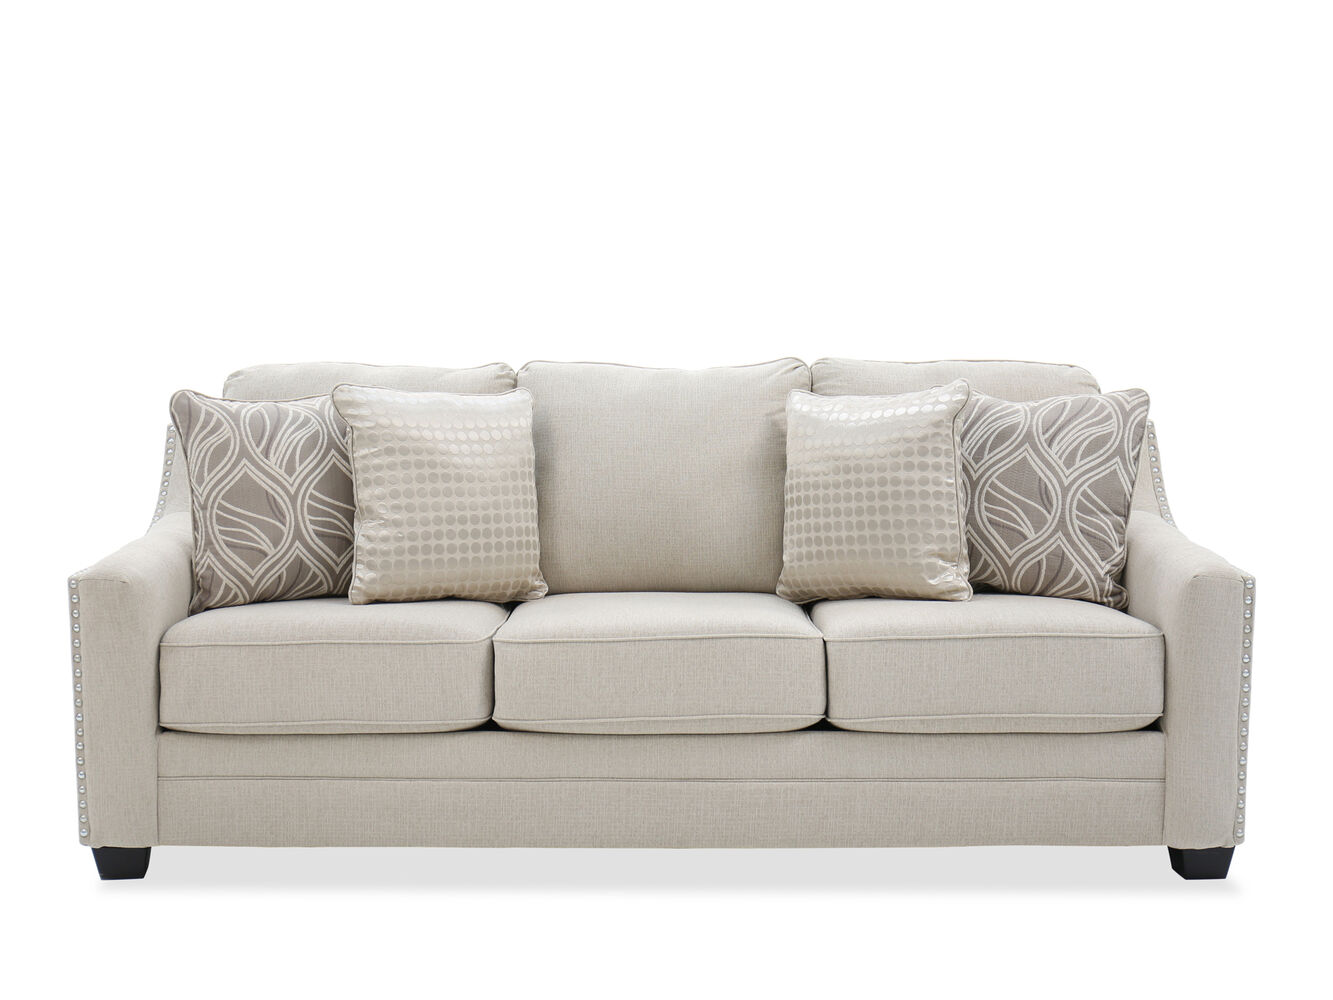 Straight Arm 92 Quot Sofa In Linen Mathis Brothers Furniture